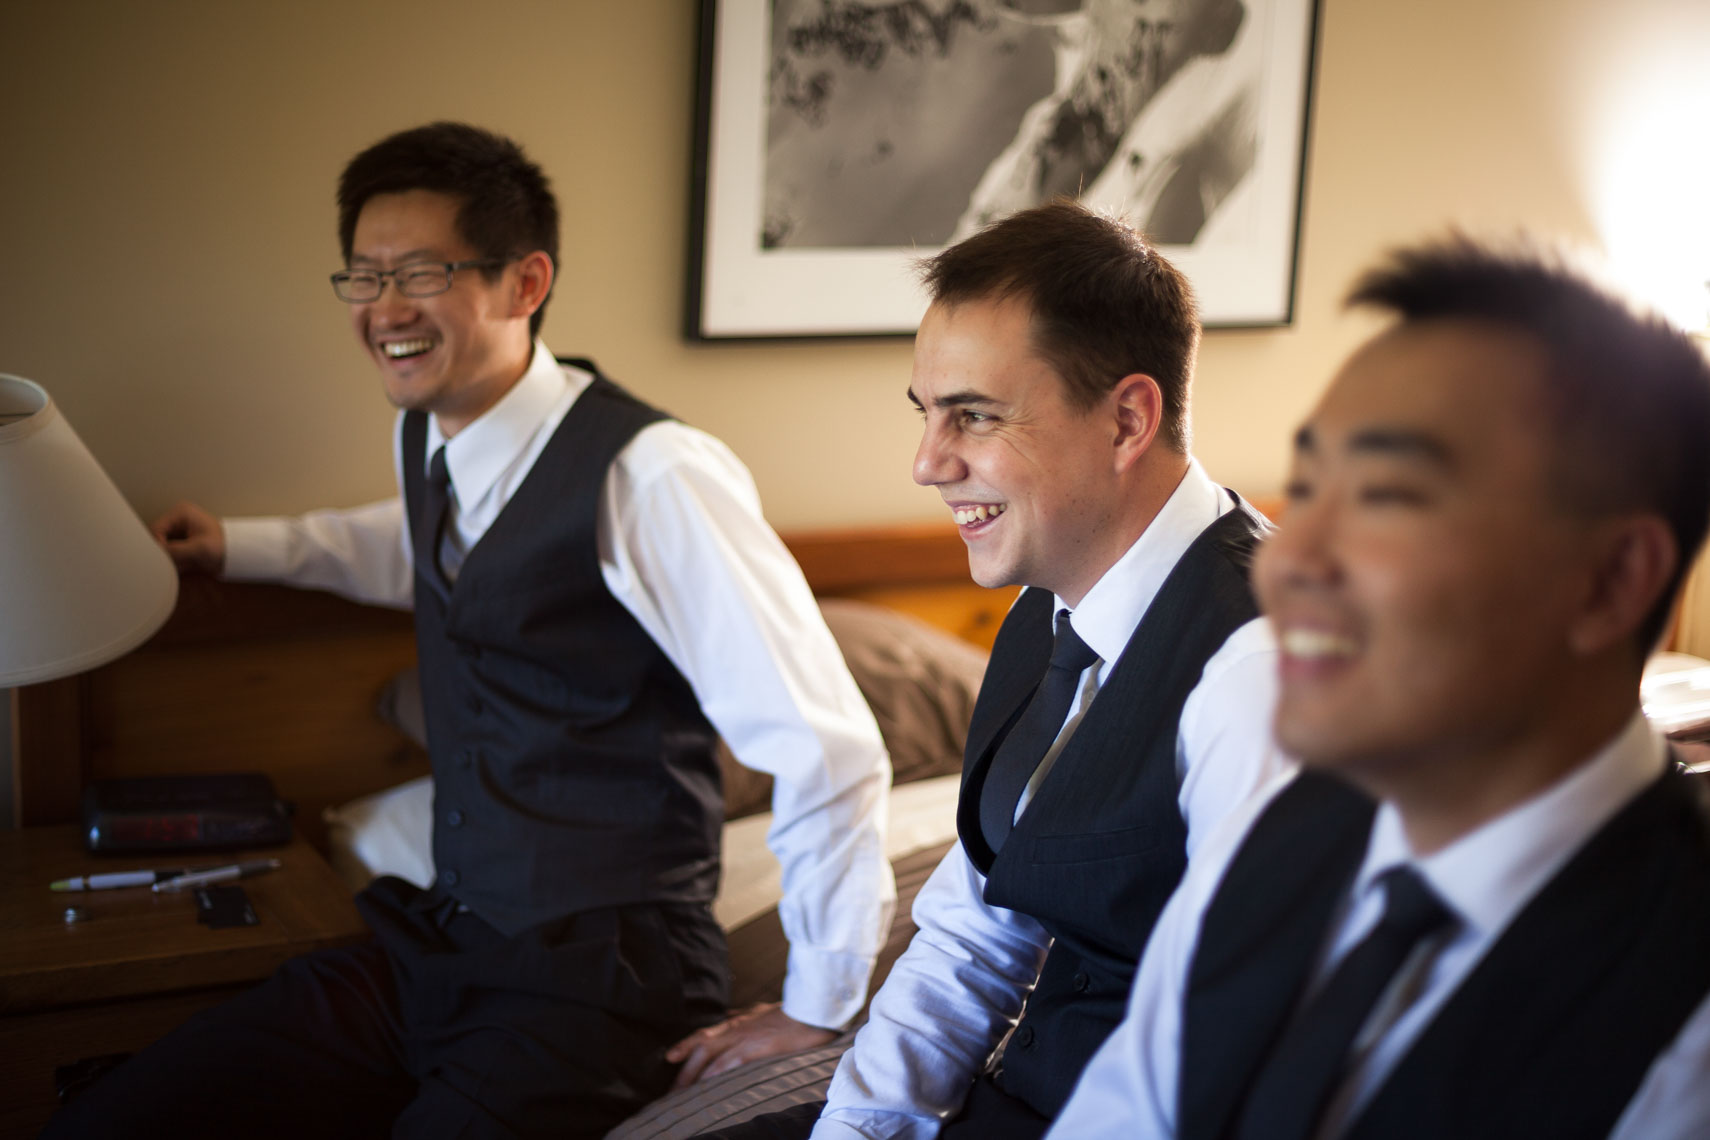 Groomsmen getting ready before ceremony  in Whistler, BC